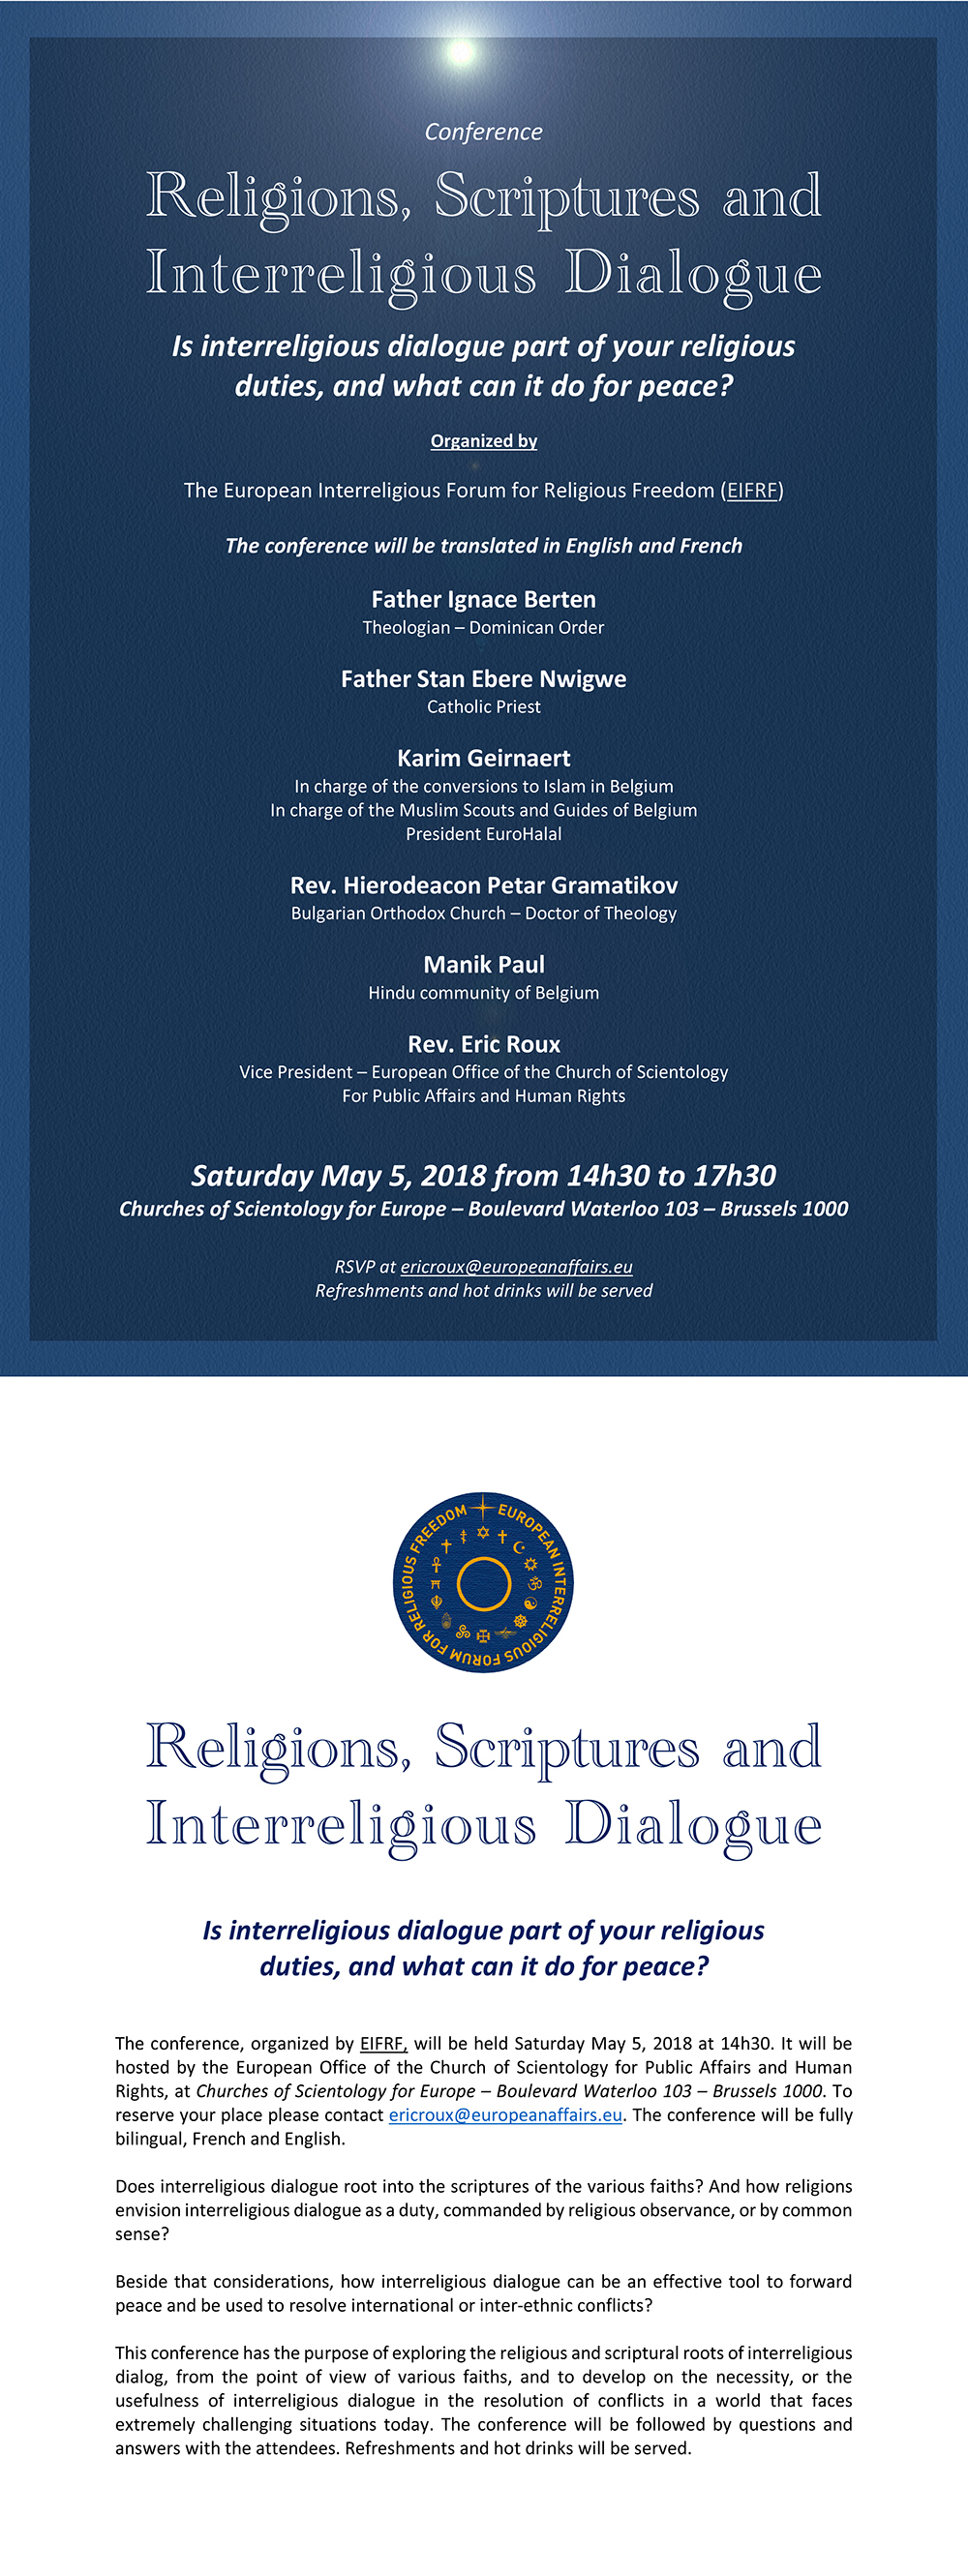 Conference - Religions, Scriptures and Interreligious Dialogue